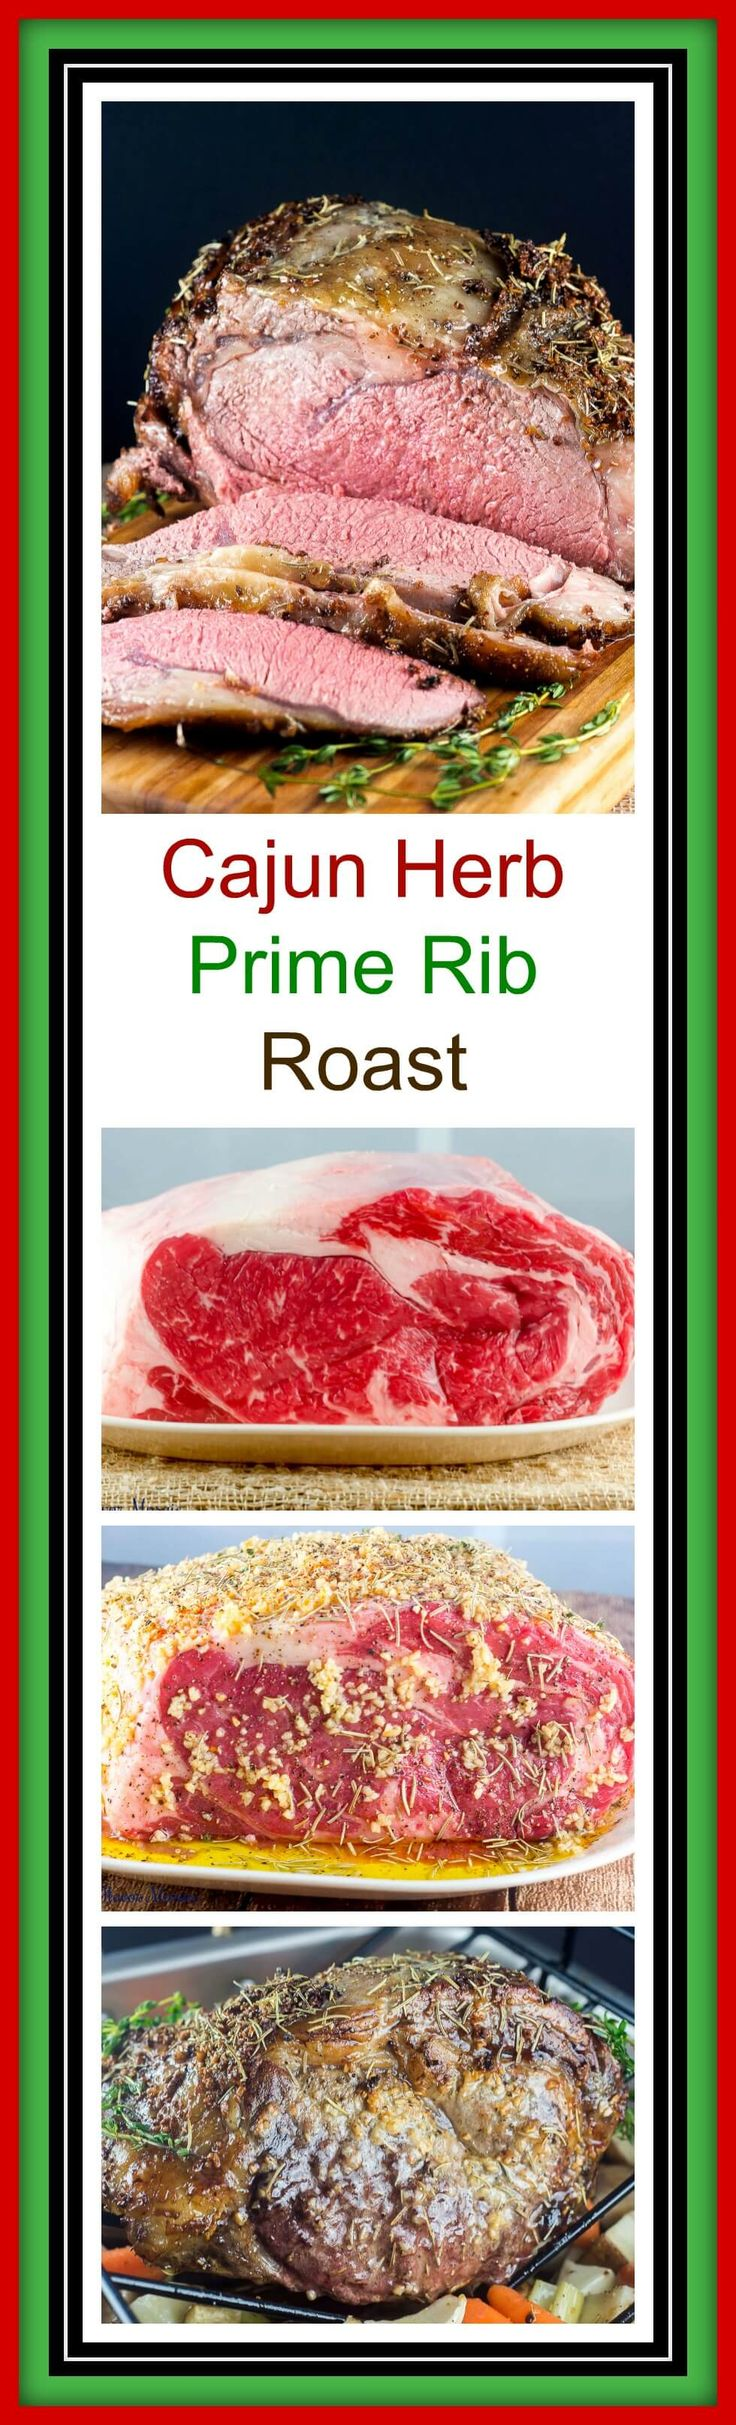 This Cajun Herb Prime Rib Roast, also known as a ribeye roast, will bring family and friends together around the #SundaySupper or Thanksgiving, Christmas, or holiday table to enjoy its tender and juicy roasted flavor. @certangusbeef #RoastPerfect #ad ~ http://FlavorMosaic.com